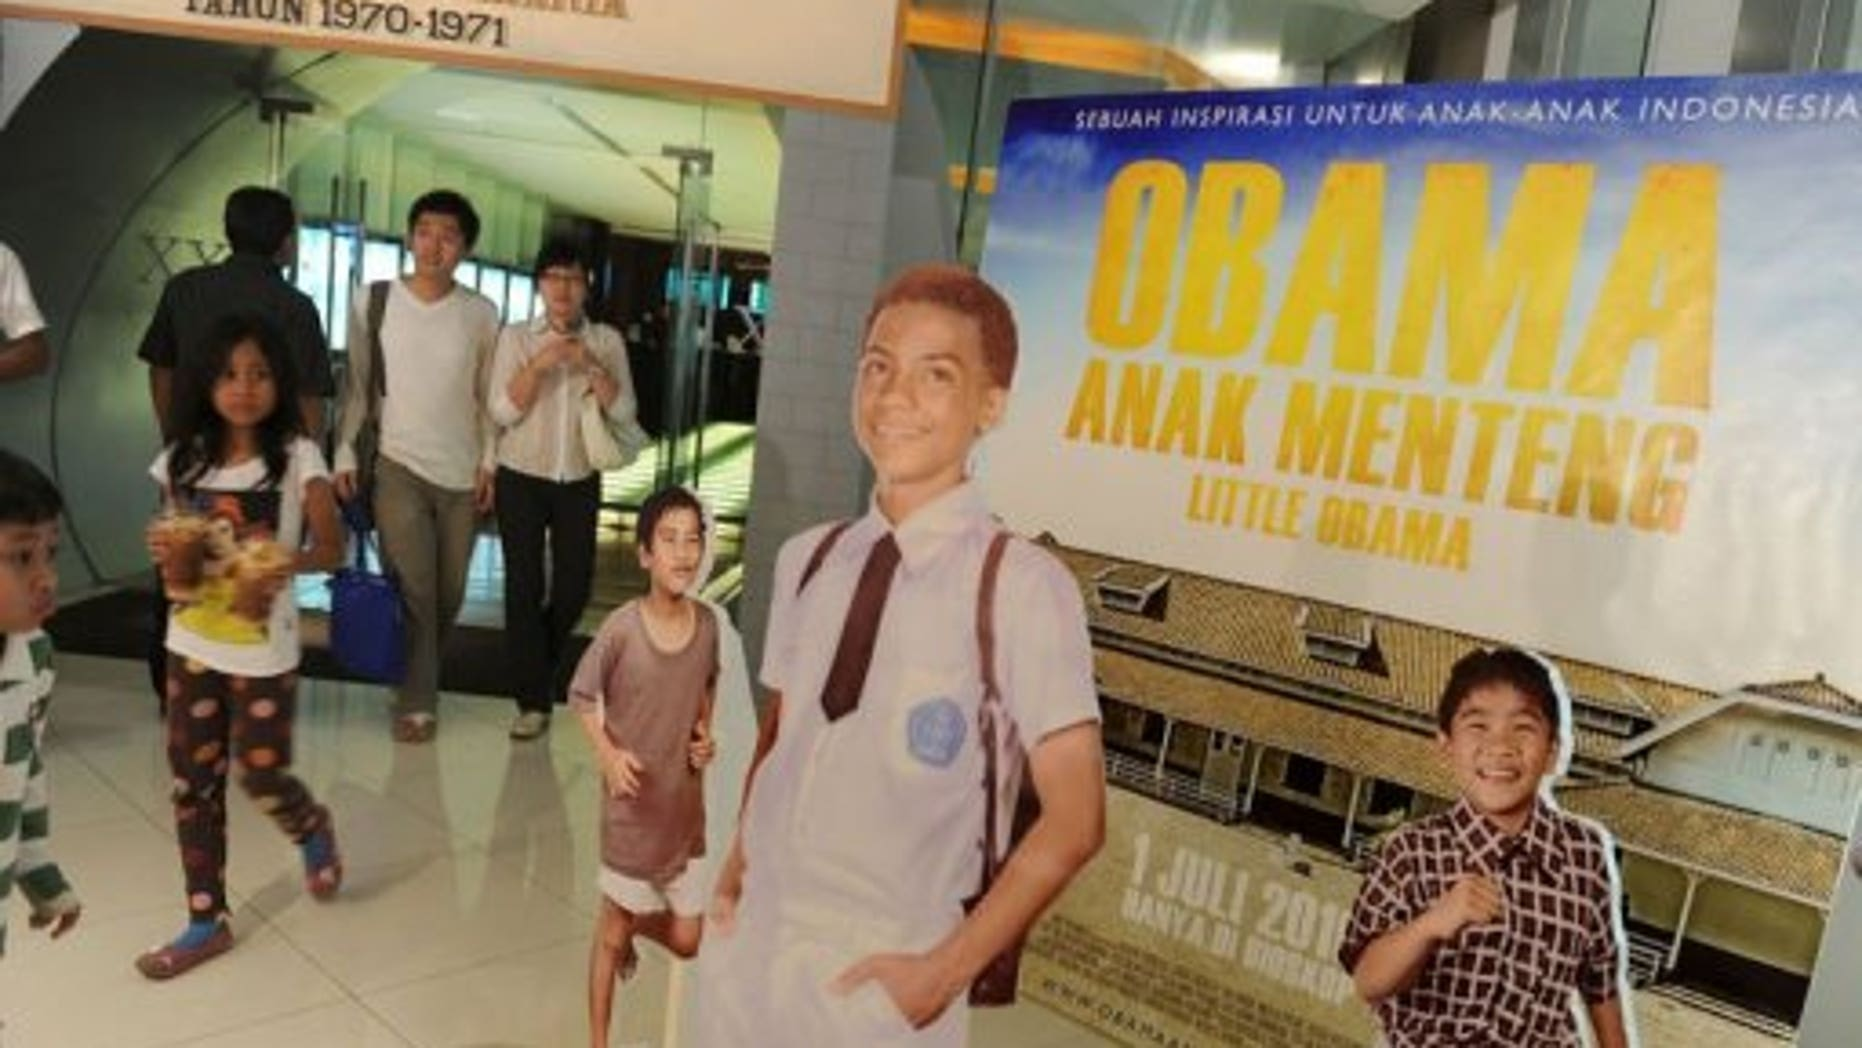 Obama lived in Jakarta from 1967 to 1971 with his mother and Indonesian stepfather. (AFP)